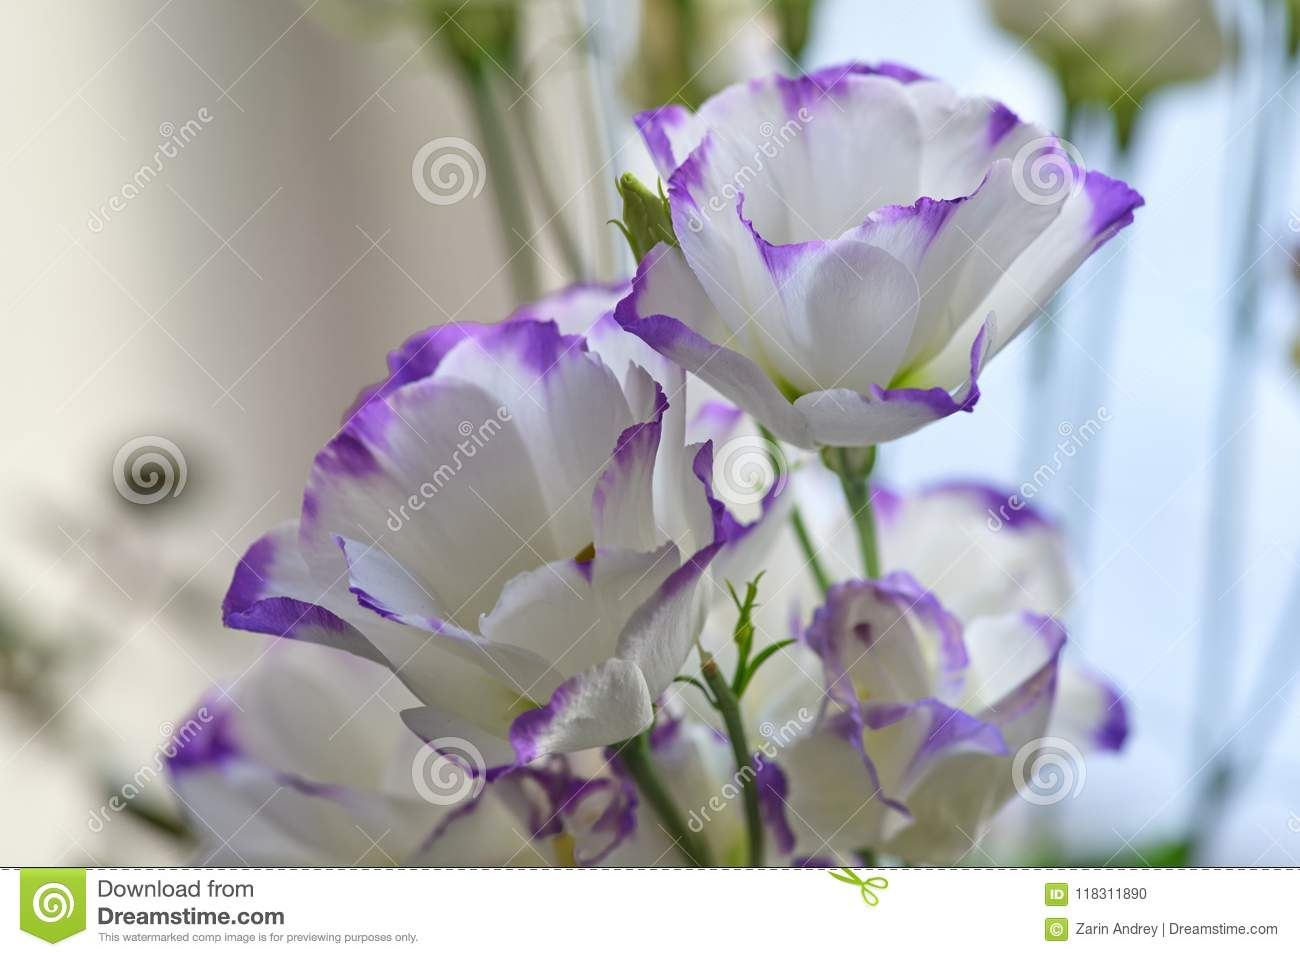 Beautiful White Flowers With A Delicate Purple Border Stock Photo